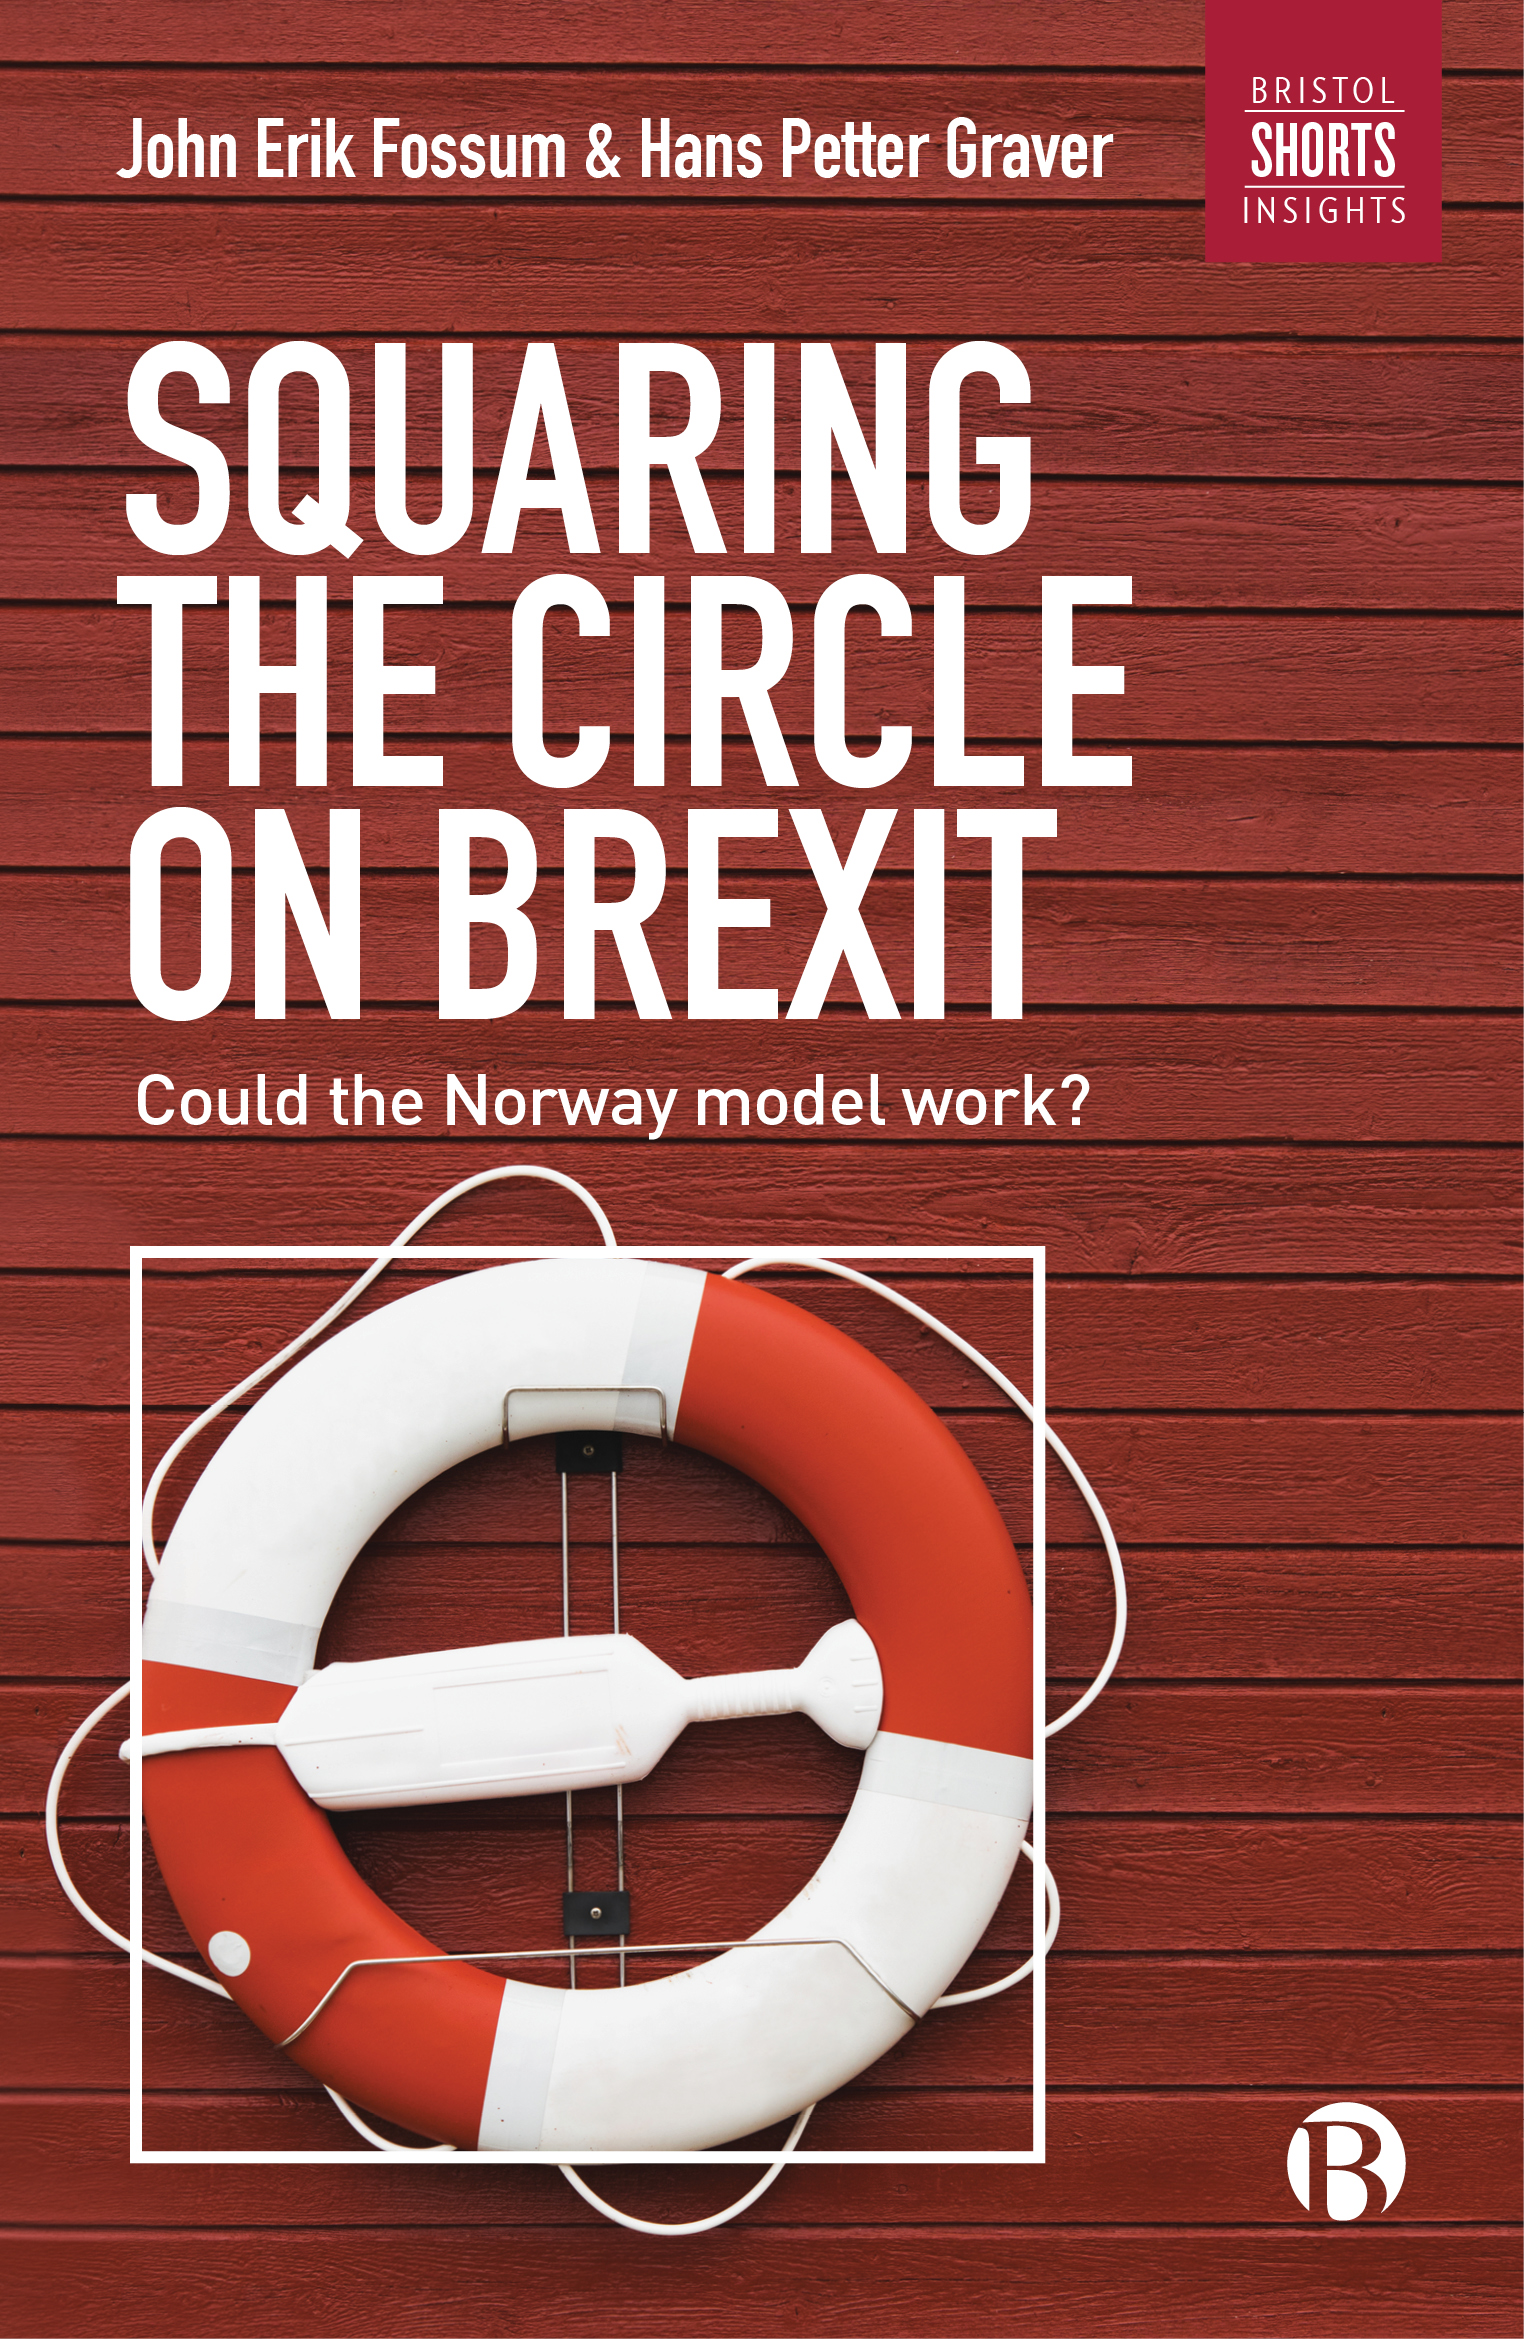 Great Coverage for Squaring the circle on Brexit